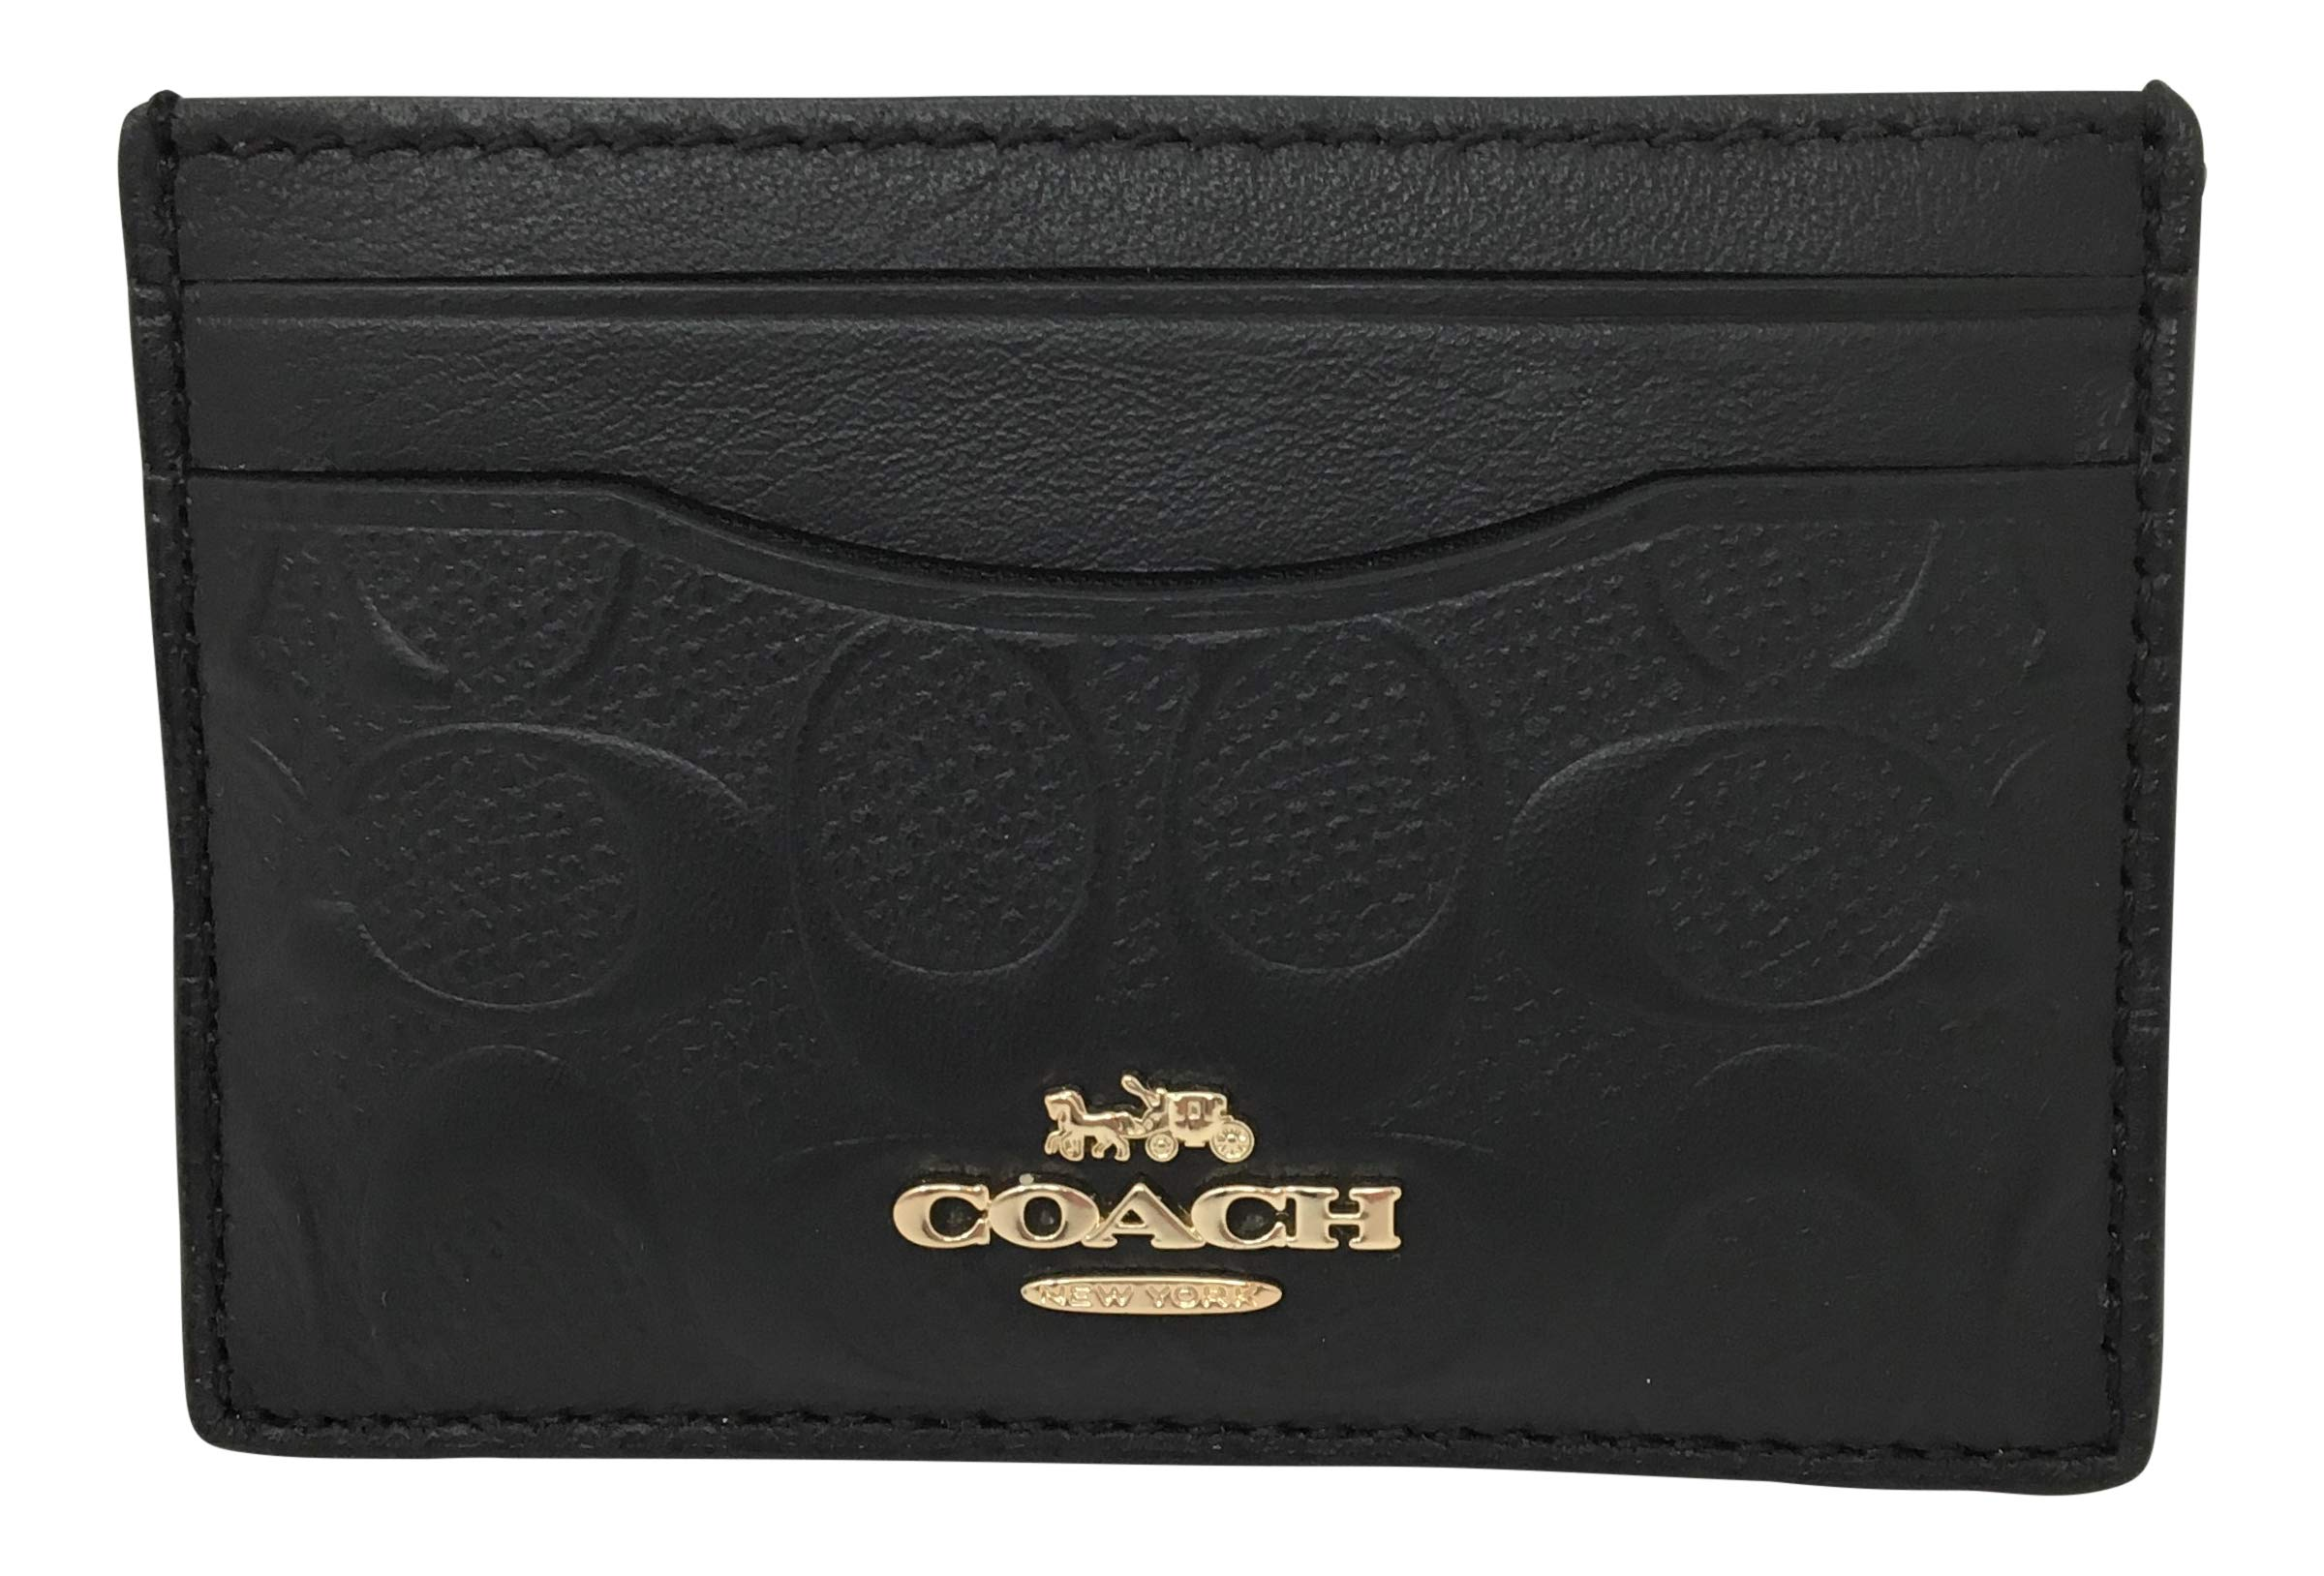 Coach Signature Leather Flat Card Case Black F73601 by Coach